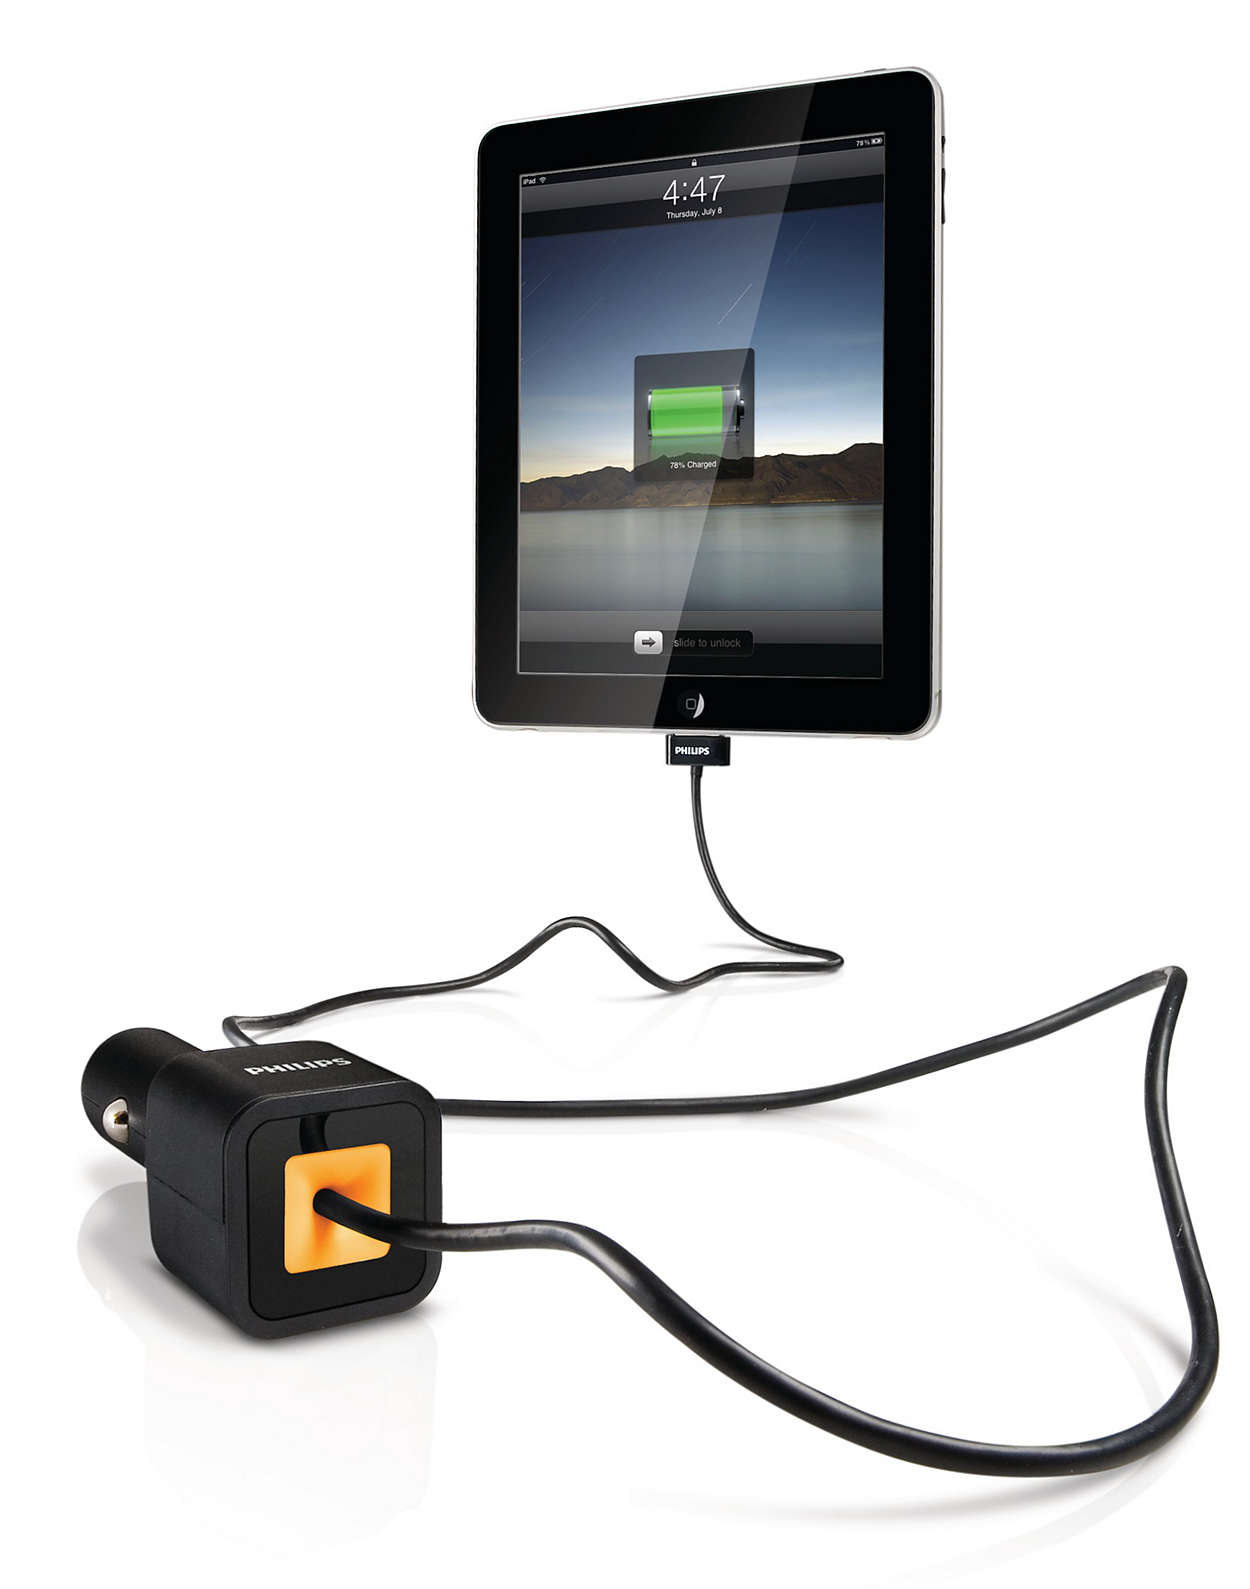 Charge iPad, iPhone or iPod in the car